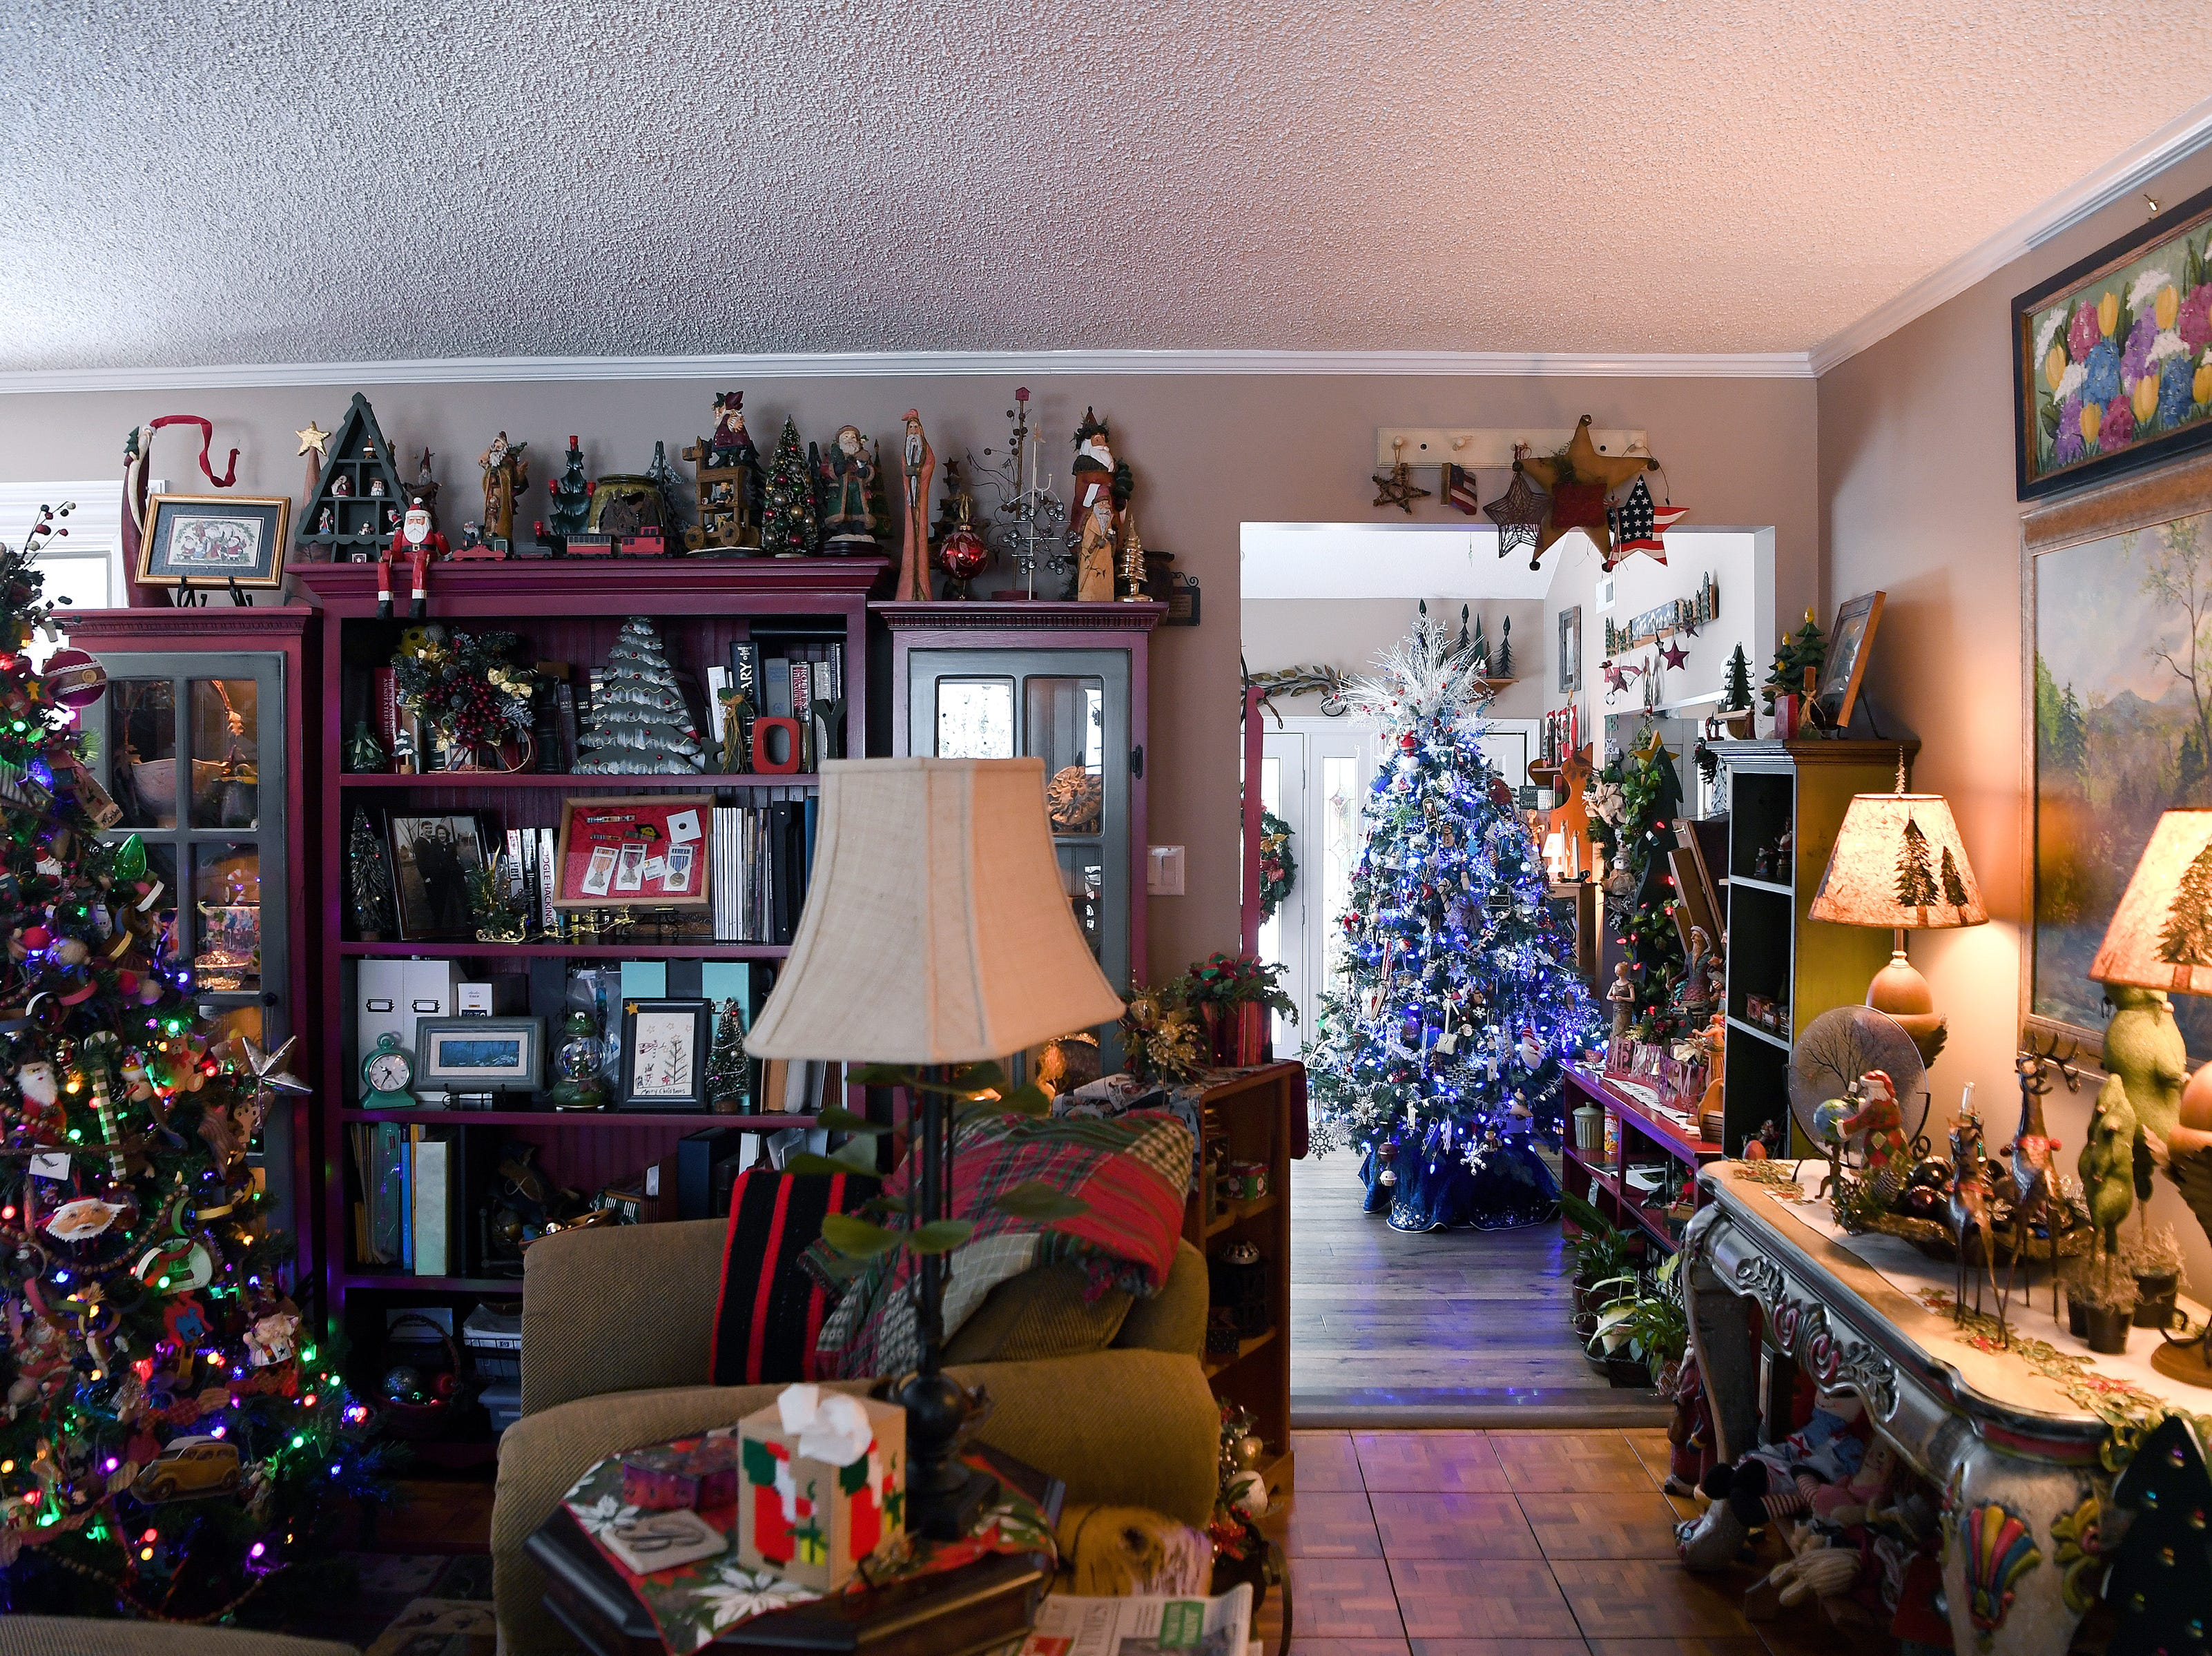 Phyllis Bryan began decorating for Christmas this year on the 23rd of November and will leave her decorations up until around Super Bowl Sunday. It usually takes her about a week to decorate her whole house.